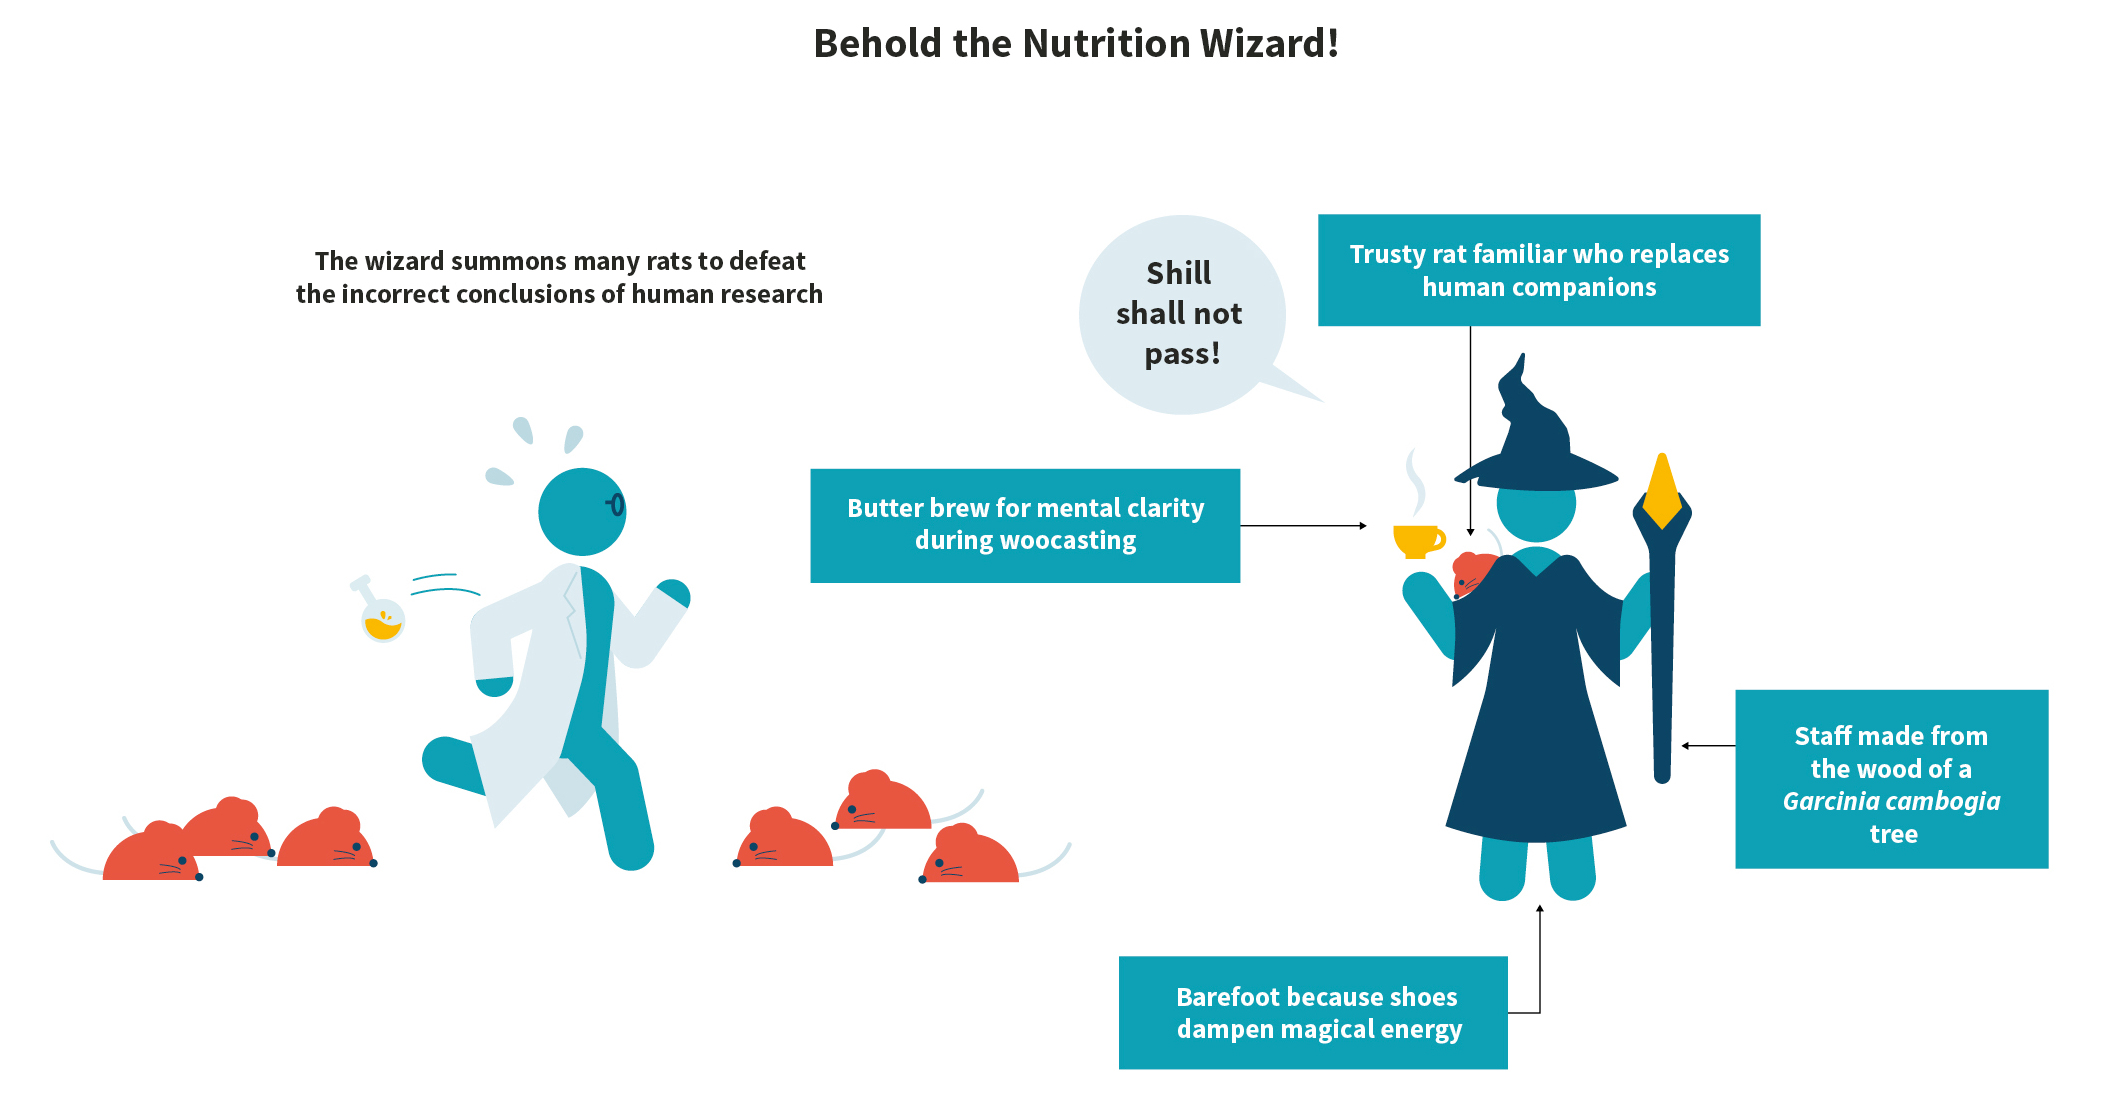 Behold the Nutrition Wizard!